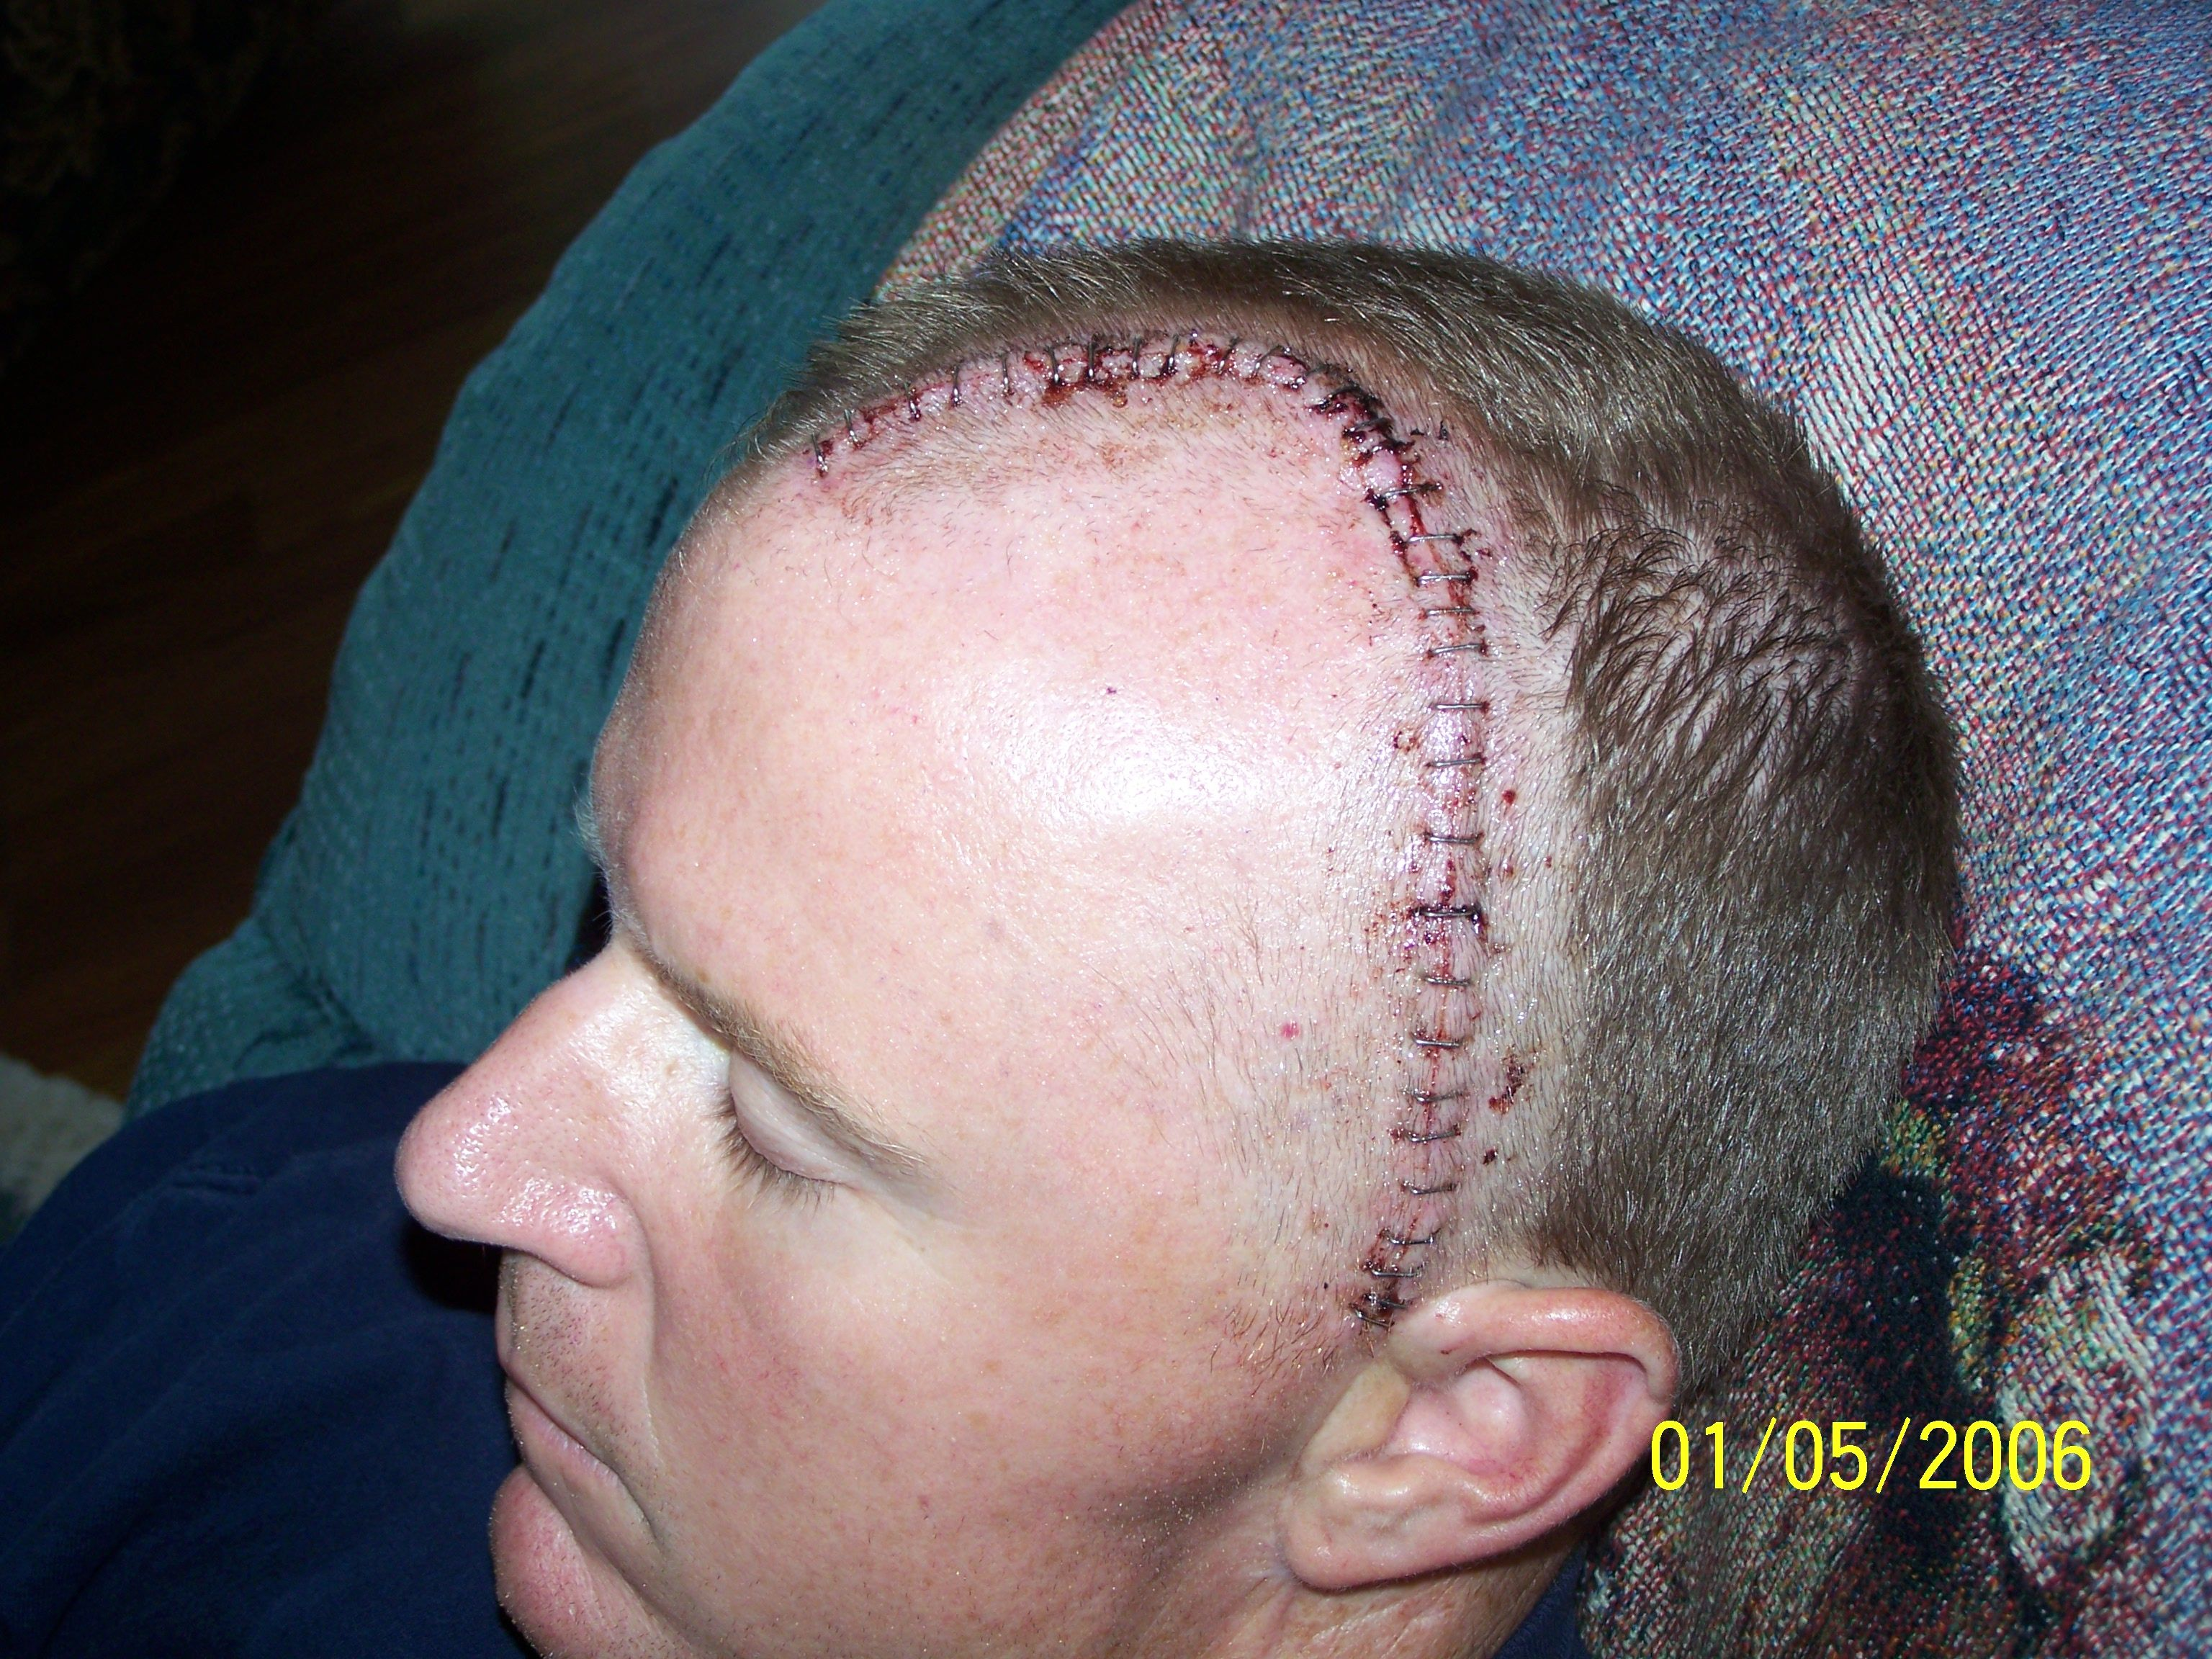 Hair shaved for brain surgery 1